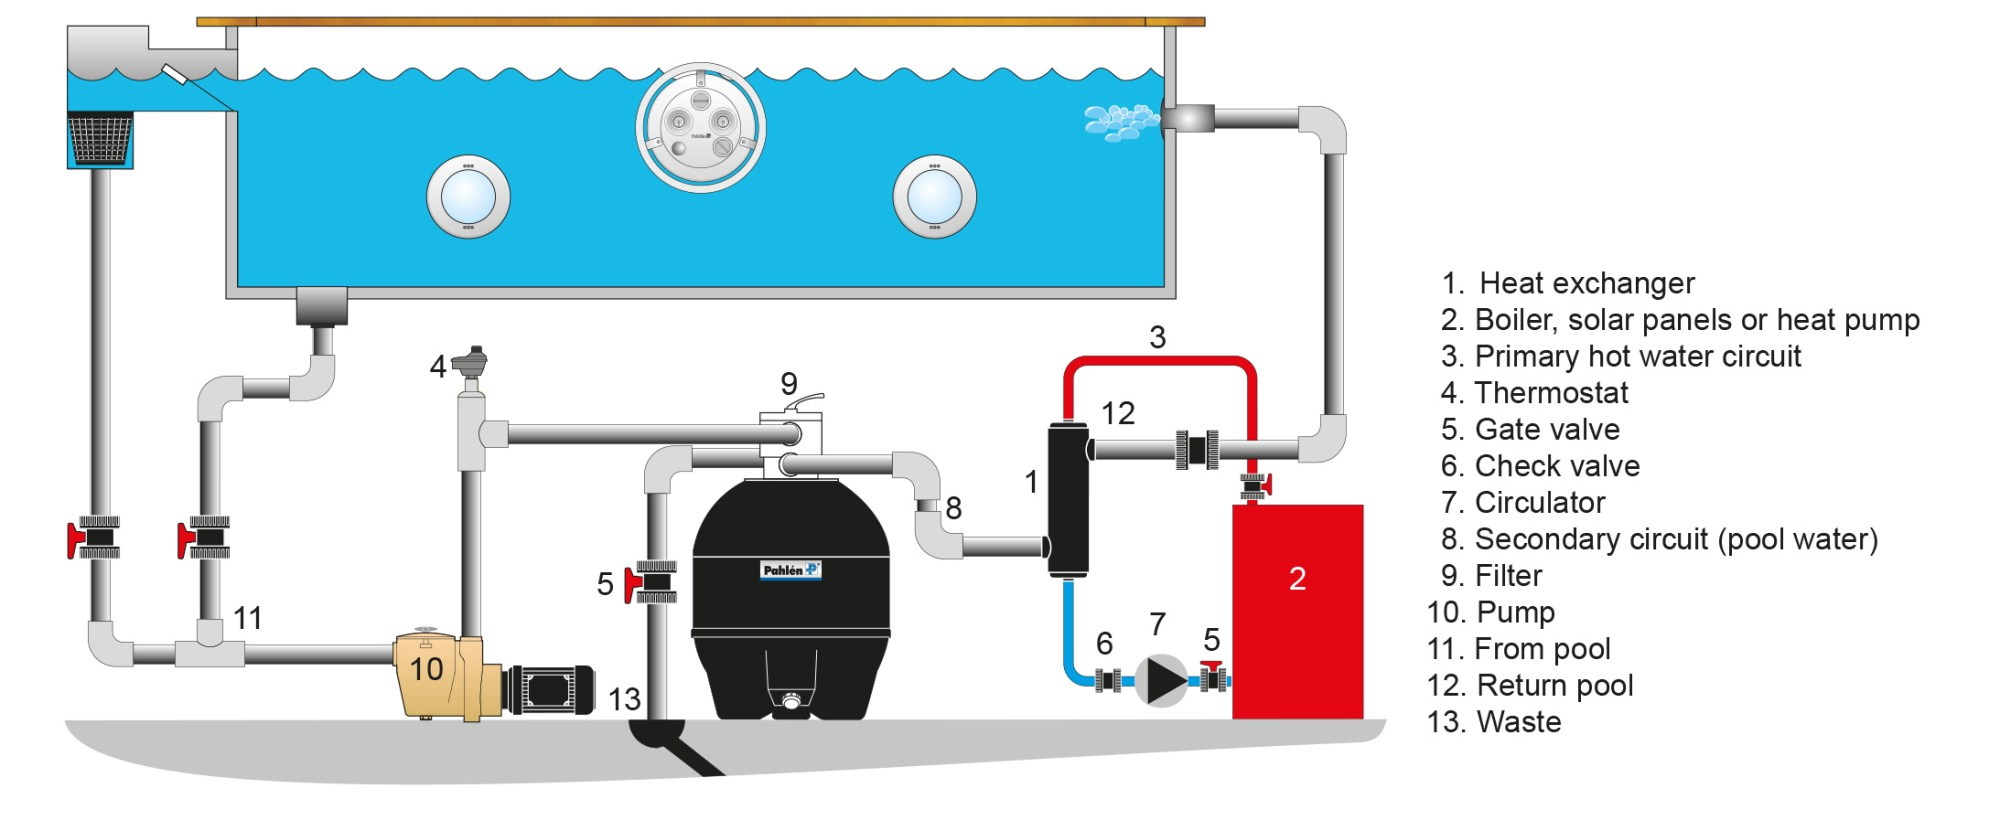 hight resolution of swimming pool schematic heat exchanger electric heater heat pump pool heat pump wiring diagram